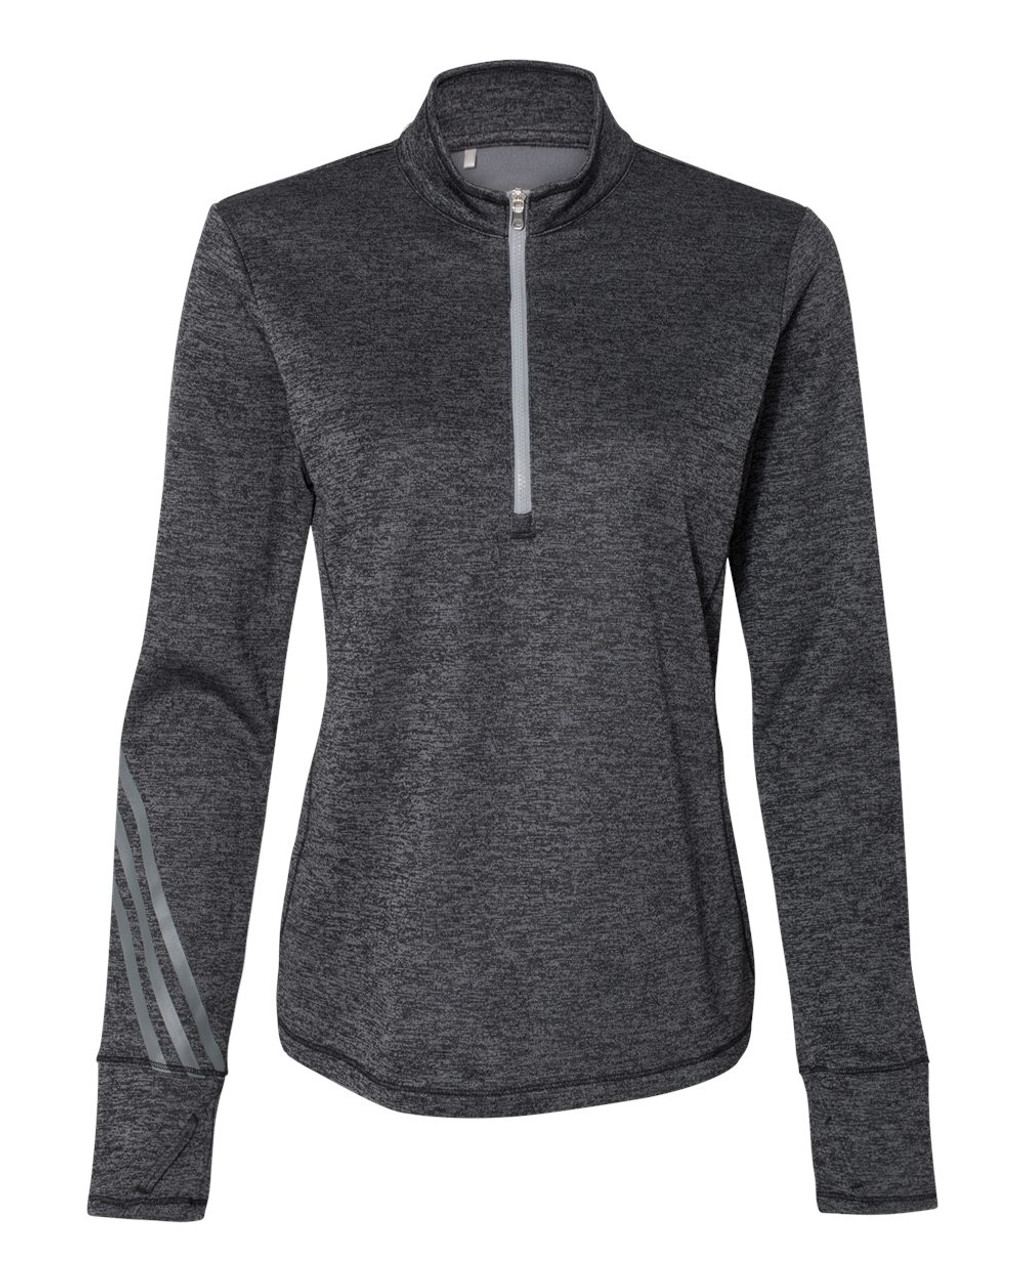 A285 Adidas Women's Brushed Terry Heather Quater-Zip Pullover | T-shirt.ca